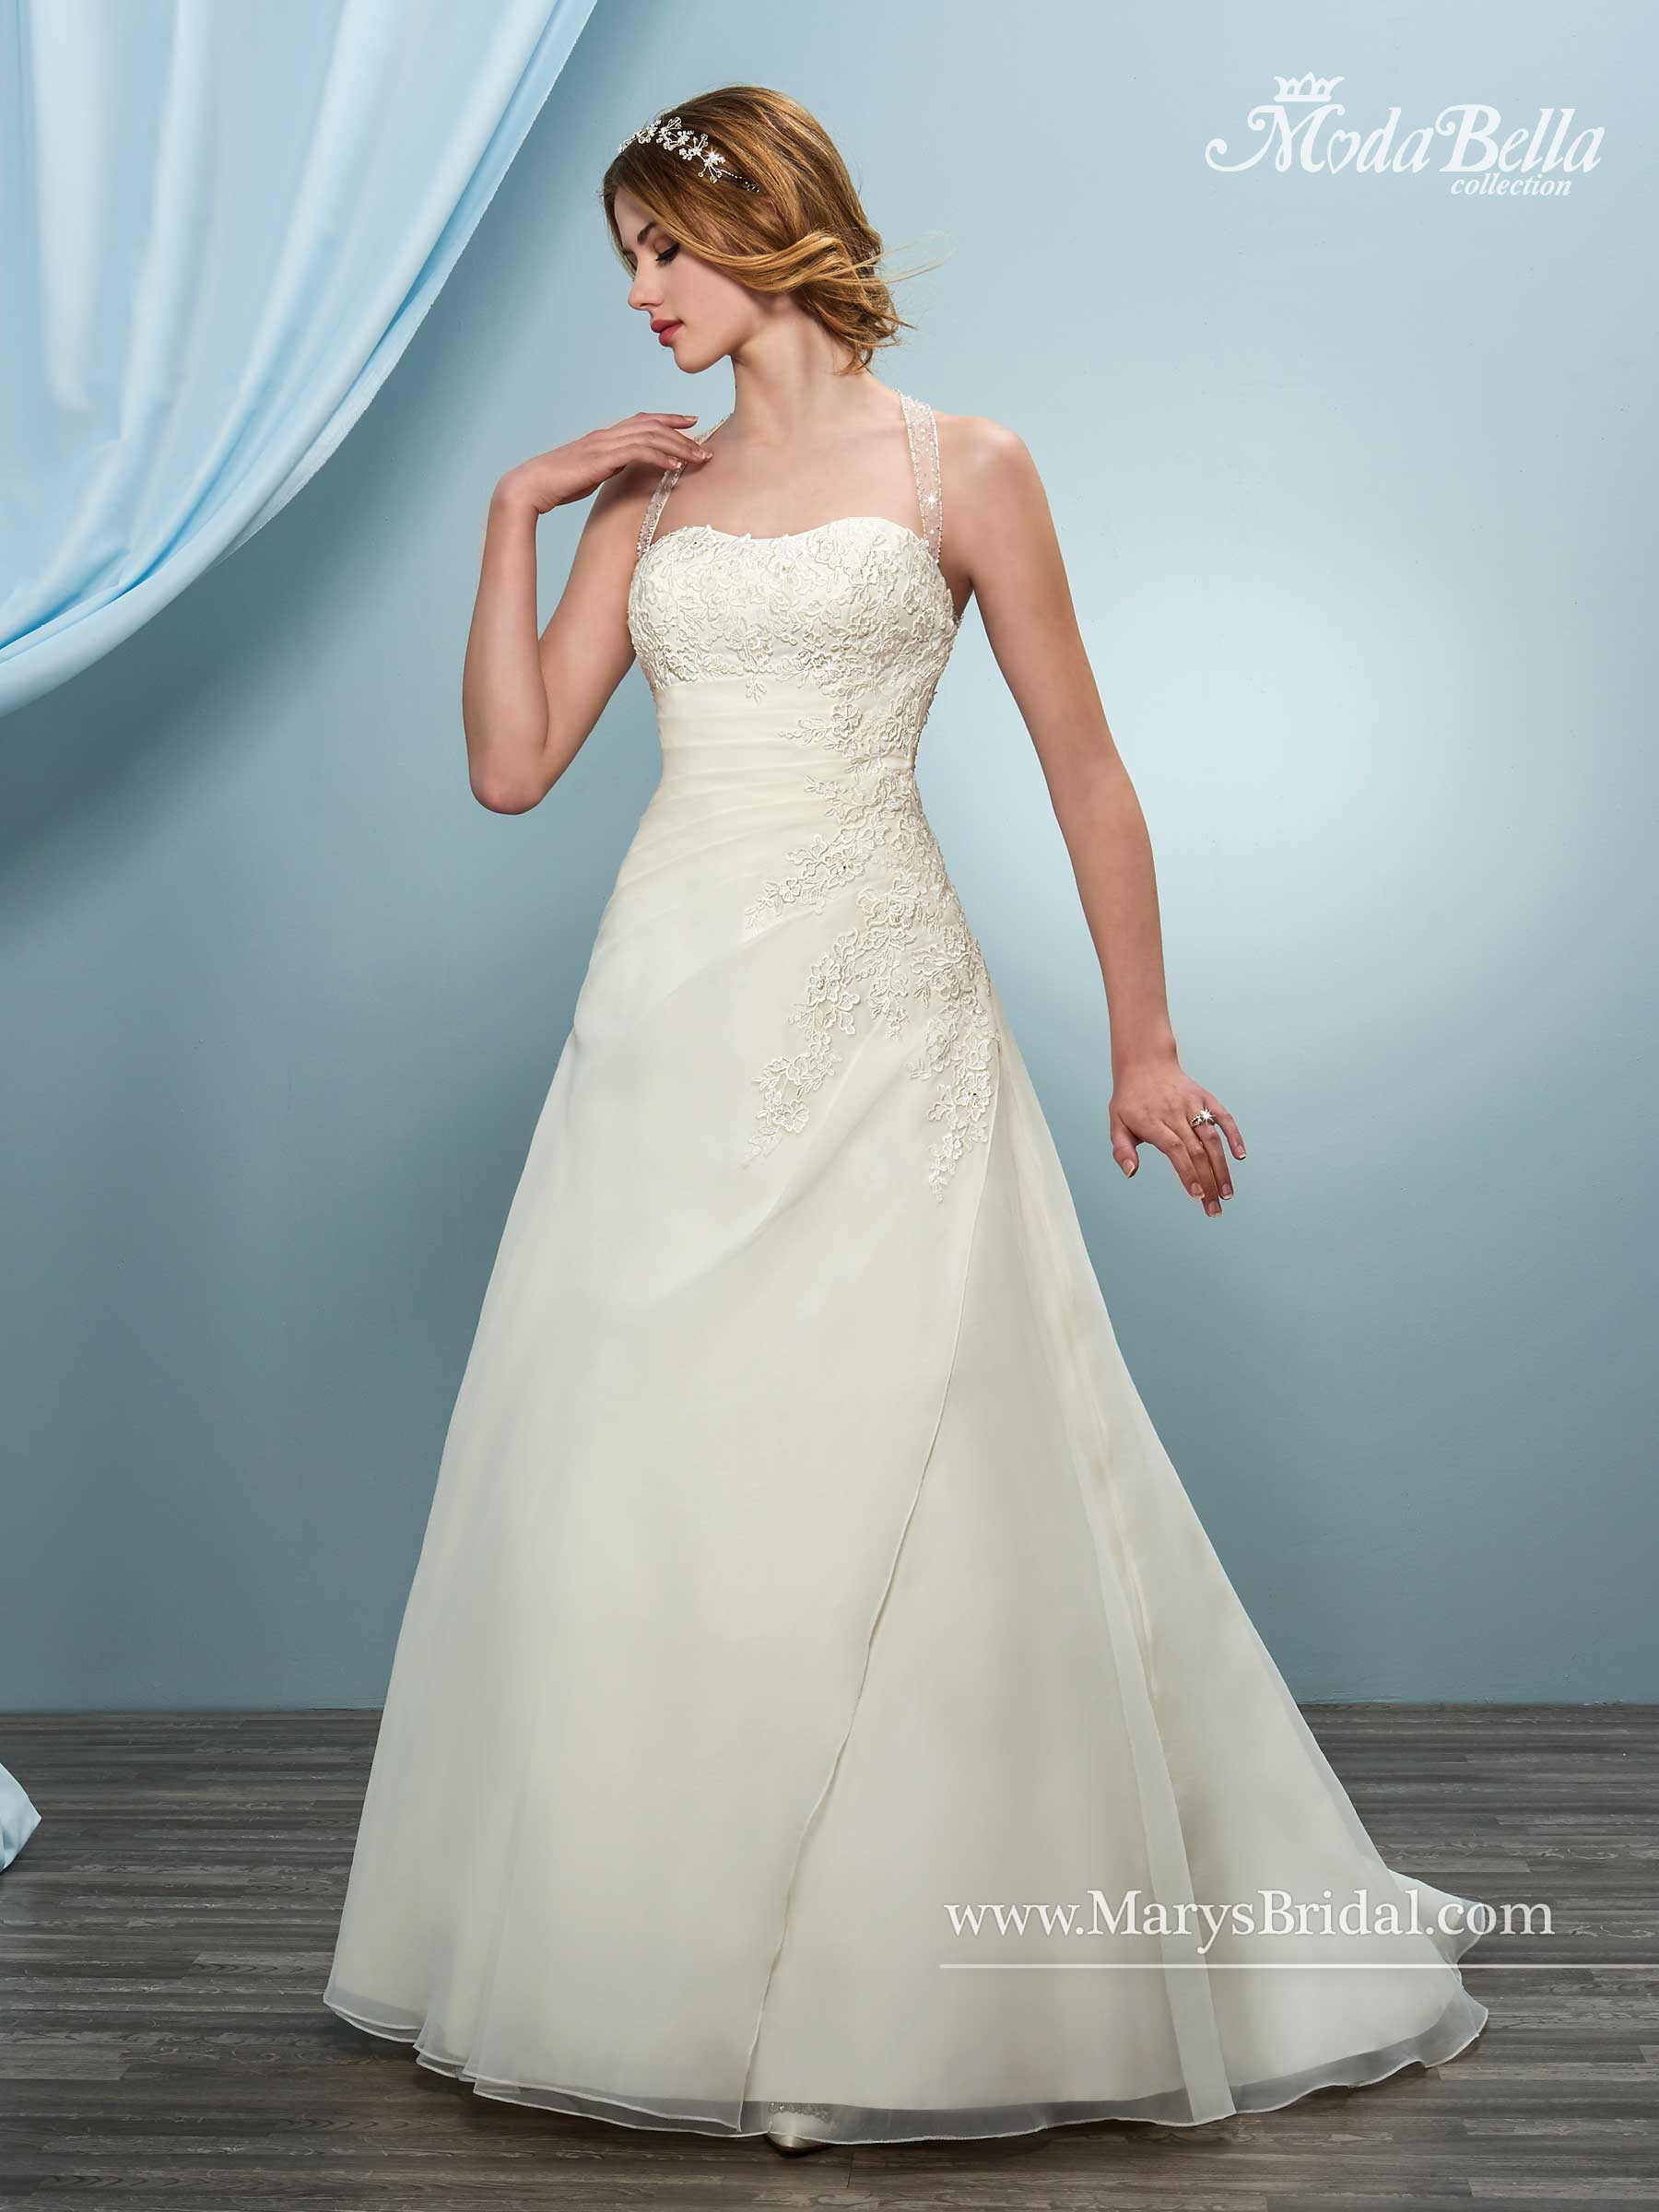 Fine Bella Wedding Dress Twilight Component - All Wedding Dresses ...